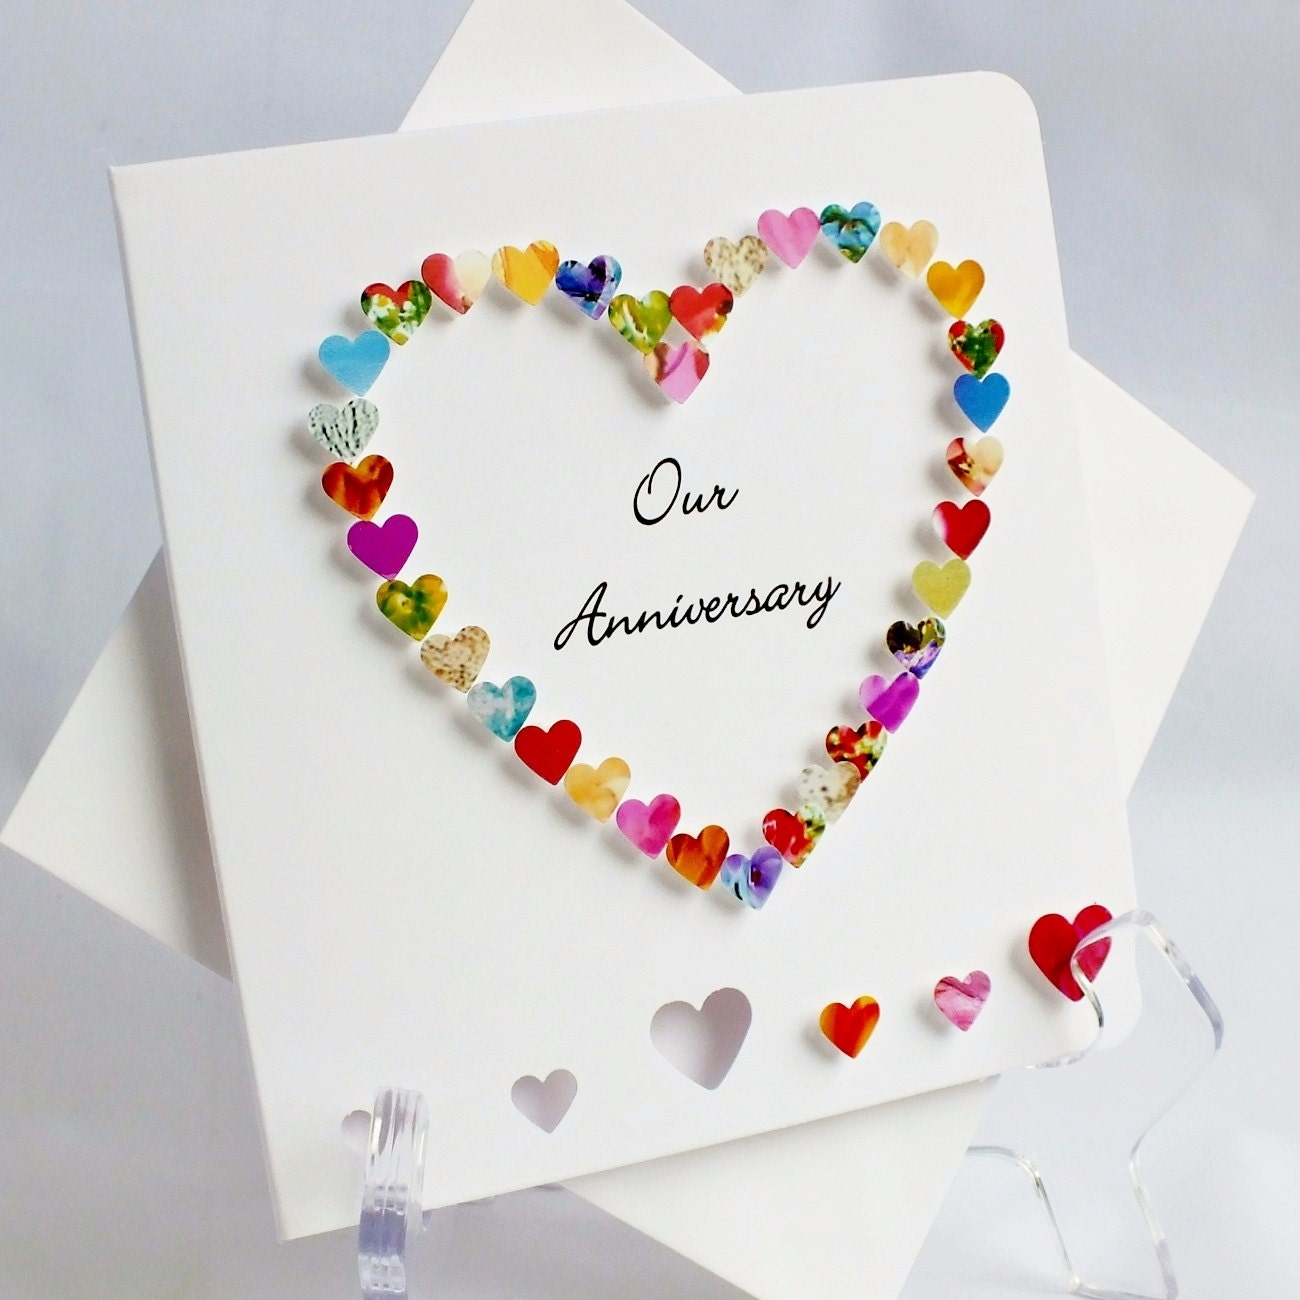 Handmade 3D Anniversary Card Our Anniversary On Your